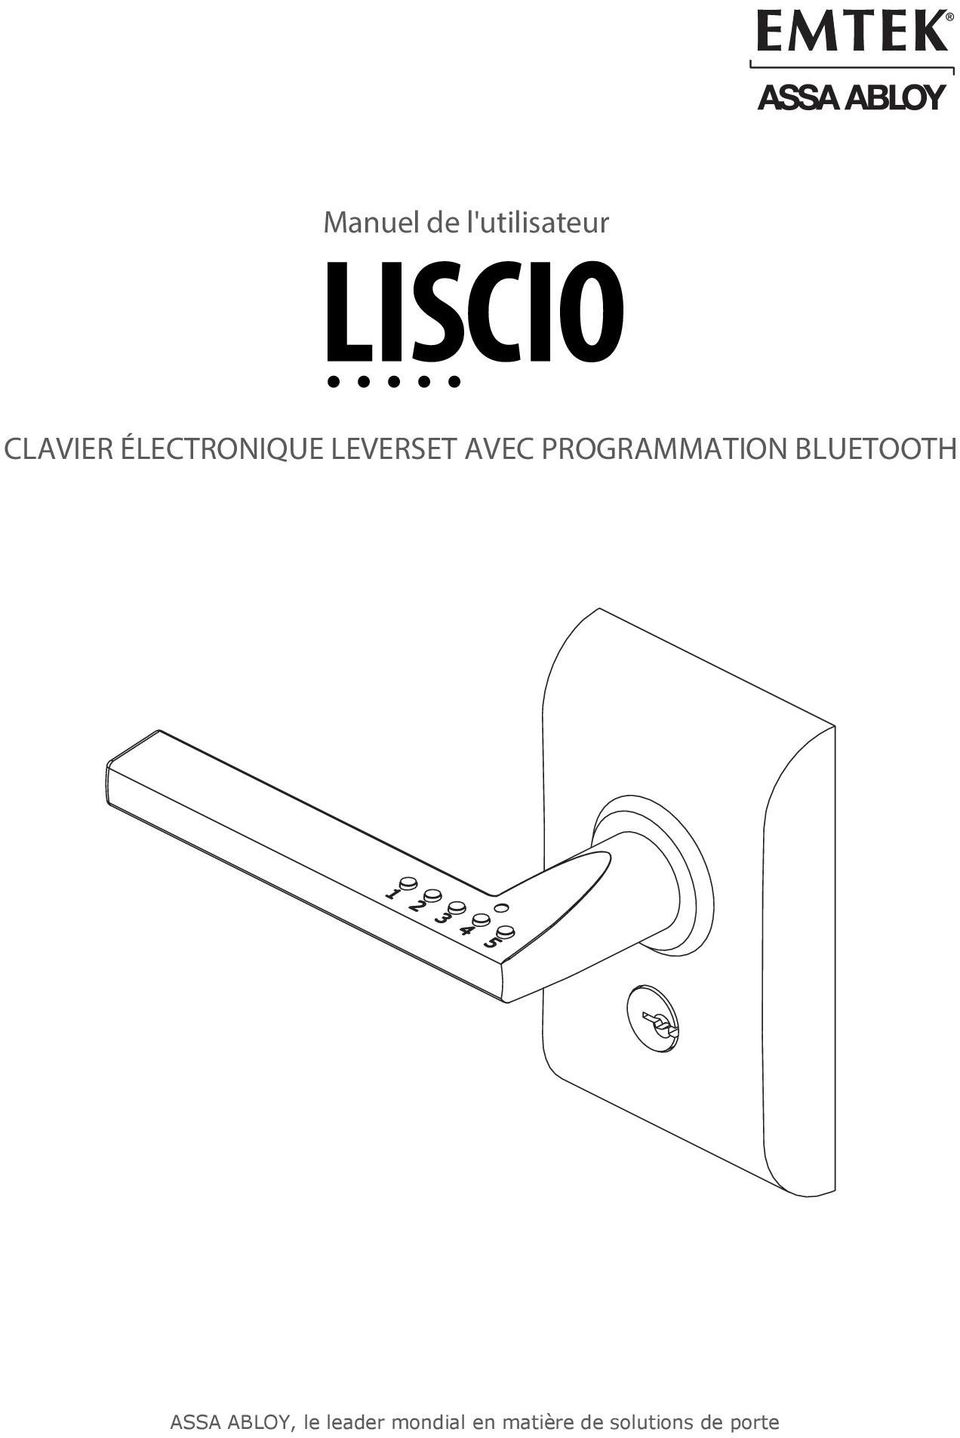 PROGRAMMATION BLUETOOTH ASSA ABLOY,